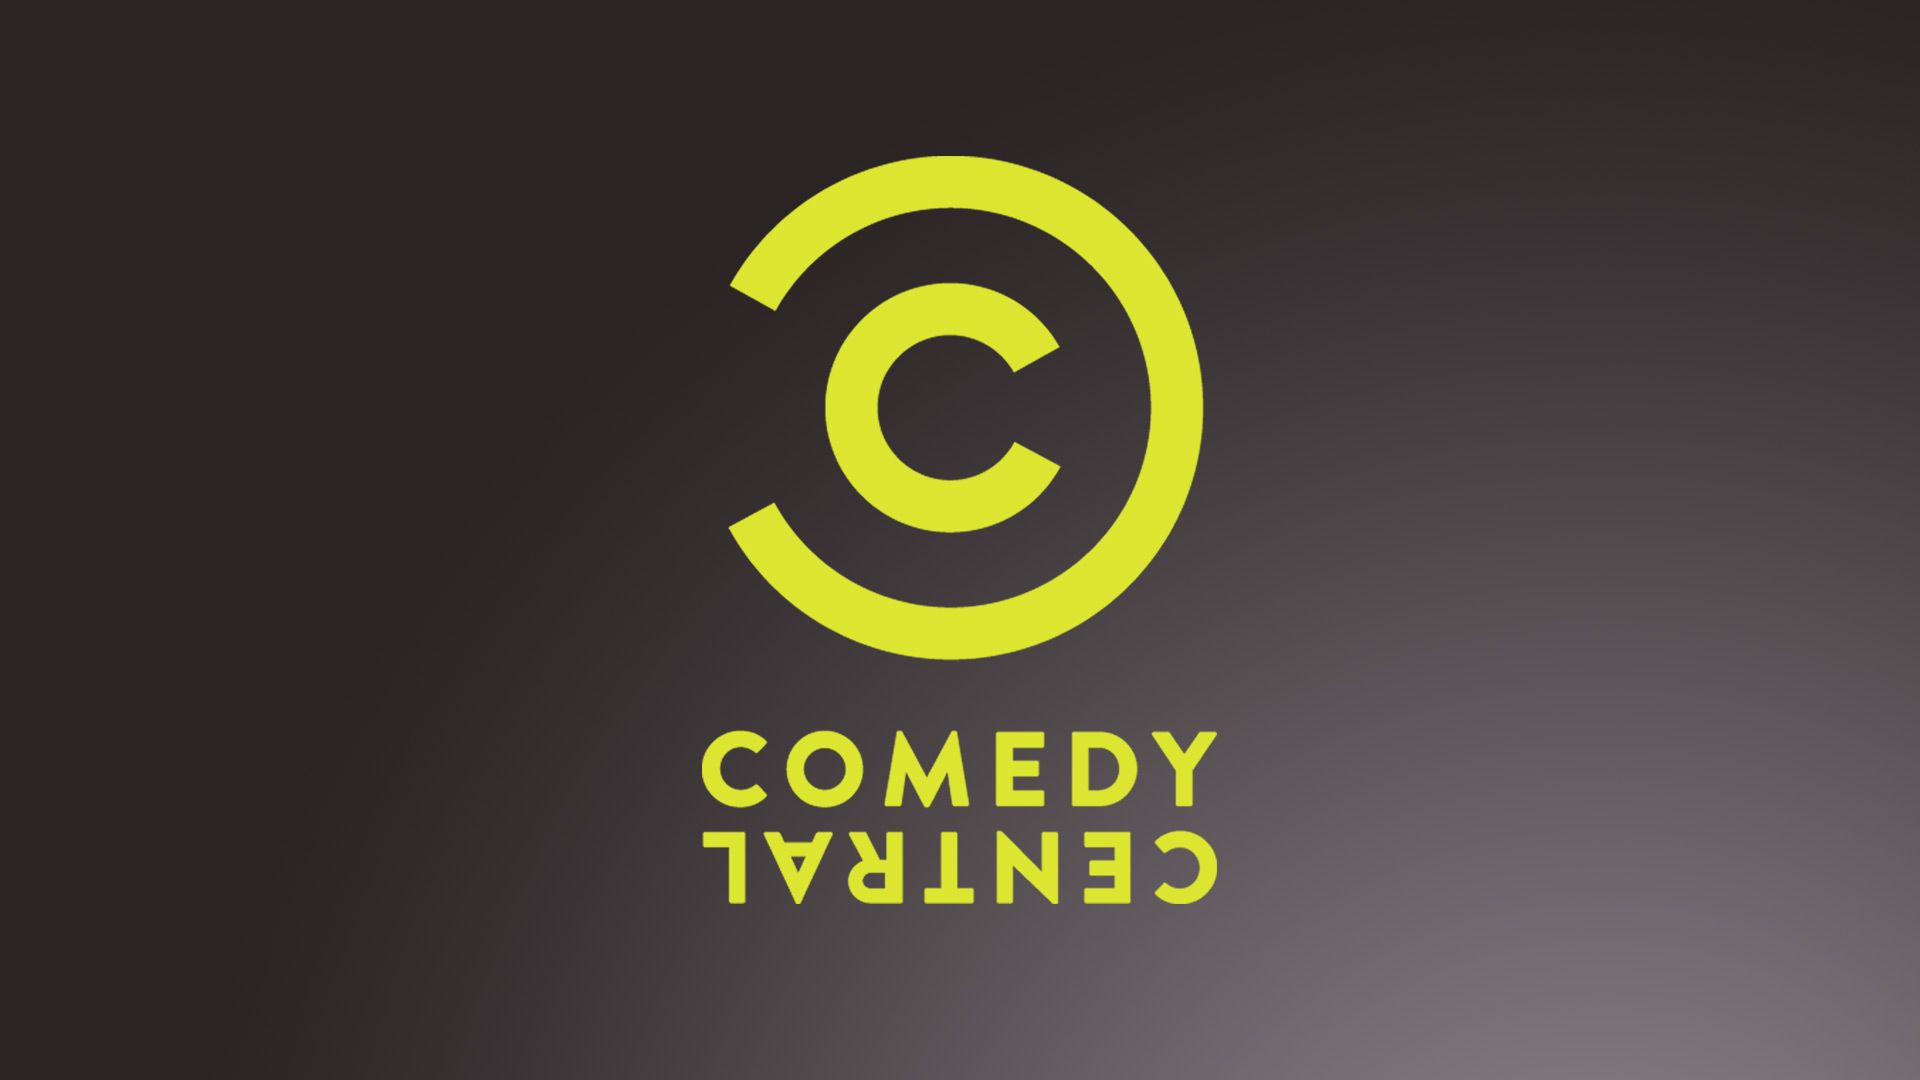 Comedy Central Official Site Tv Show Full Episodes Funny Video Clips